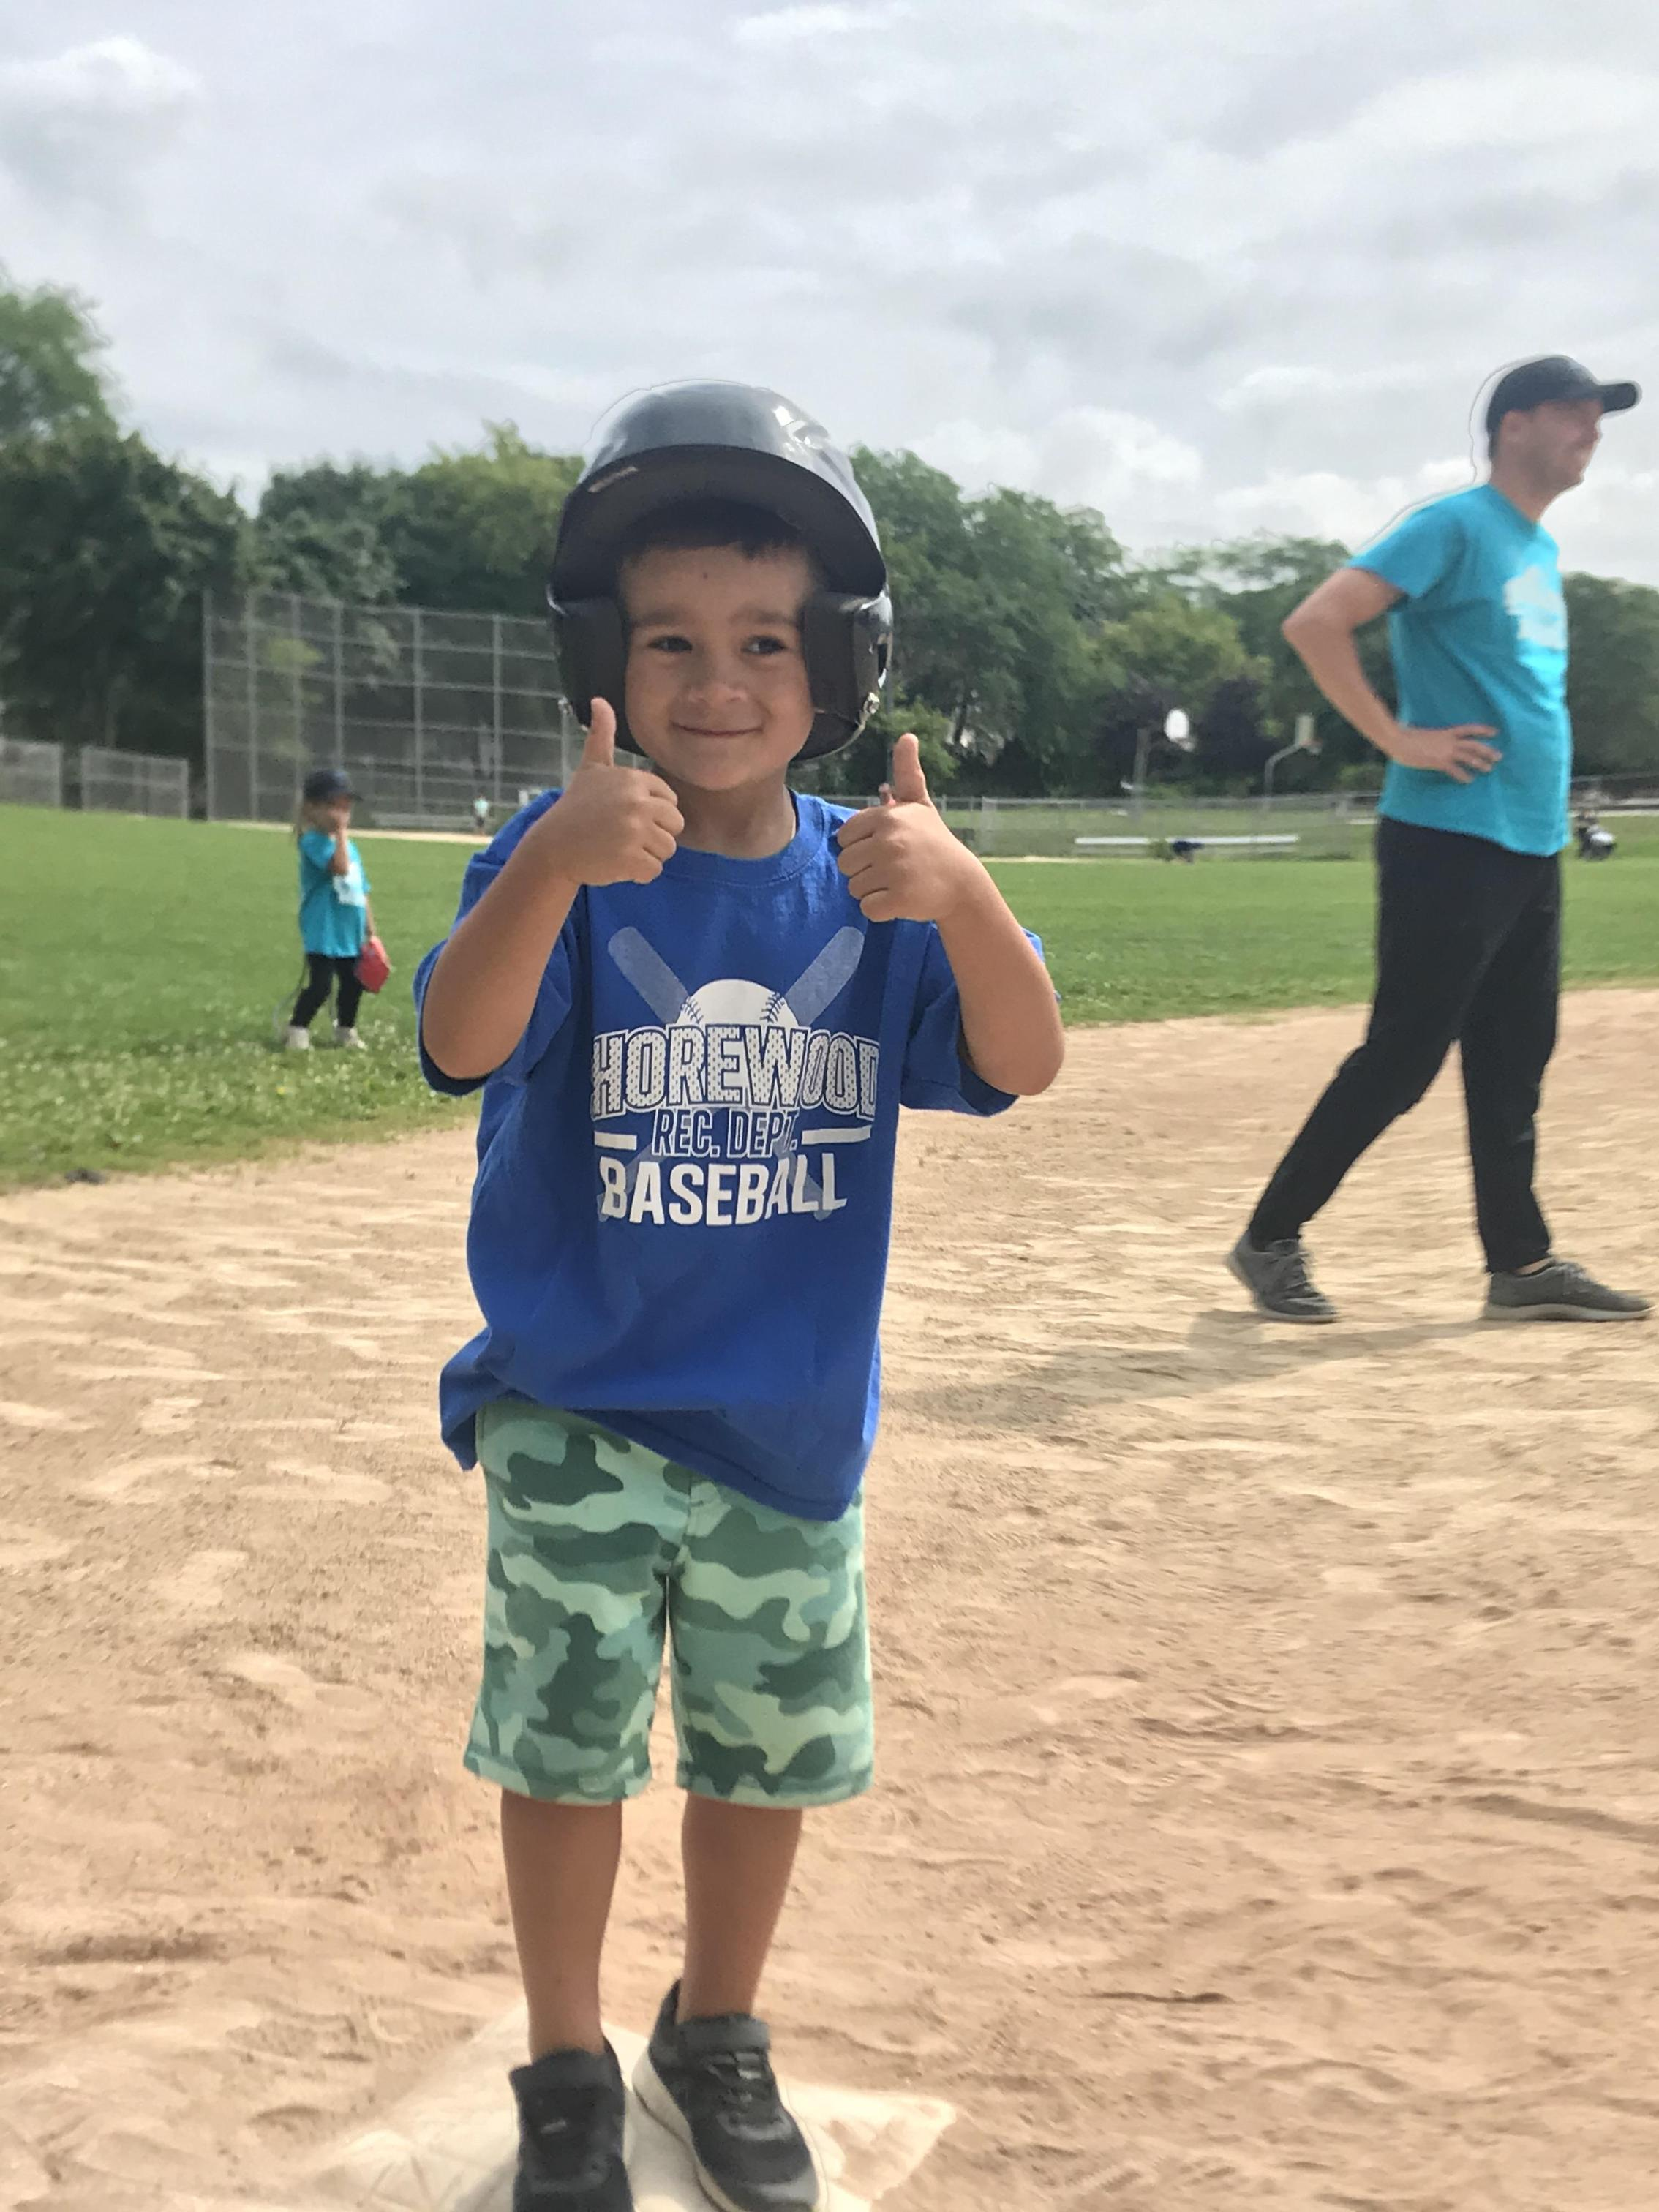 T-ball player thumbs up